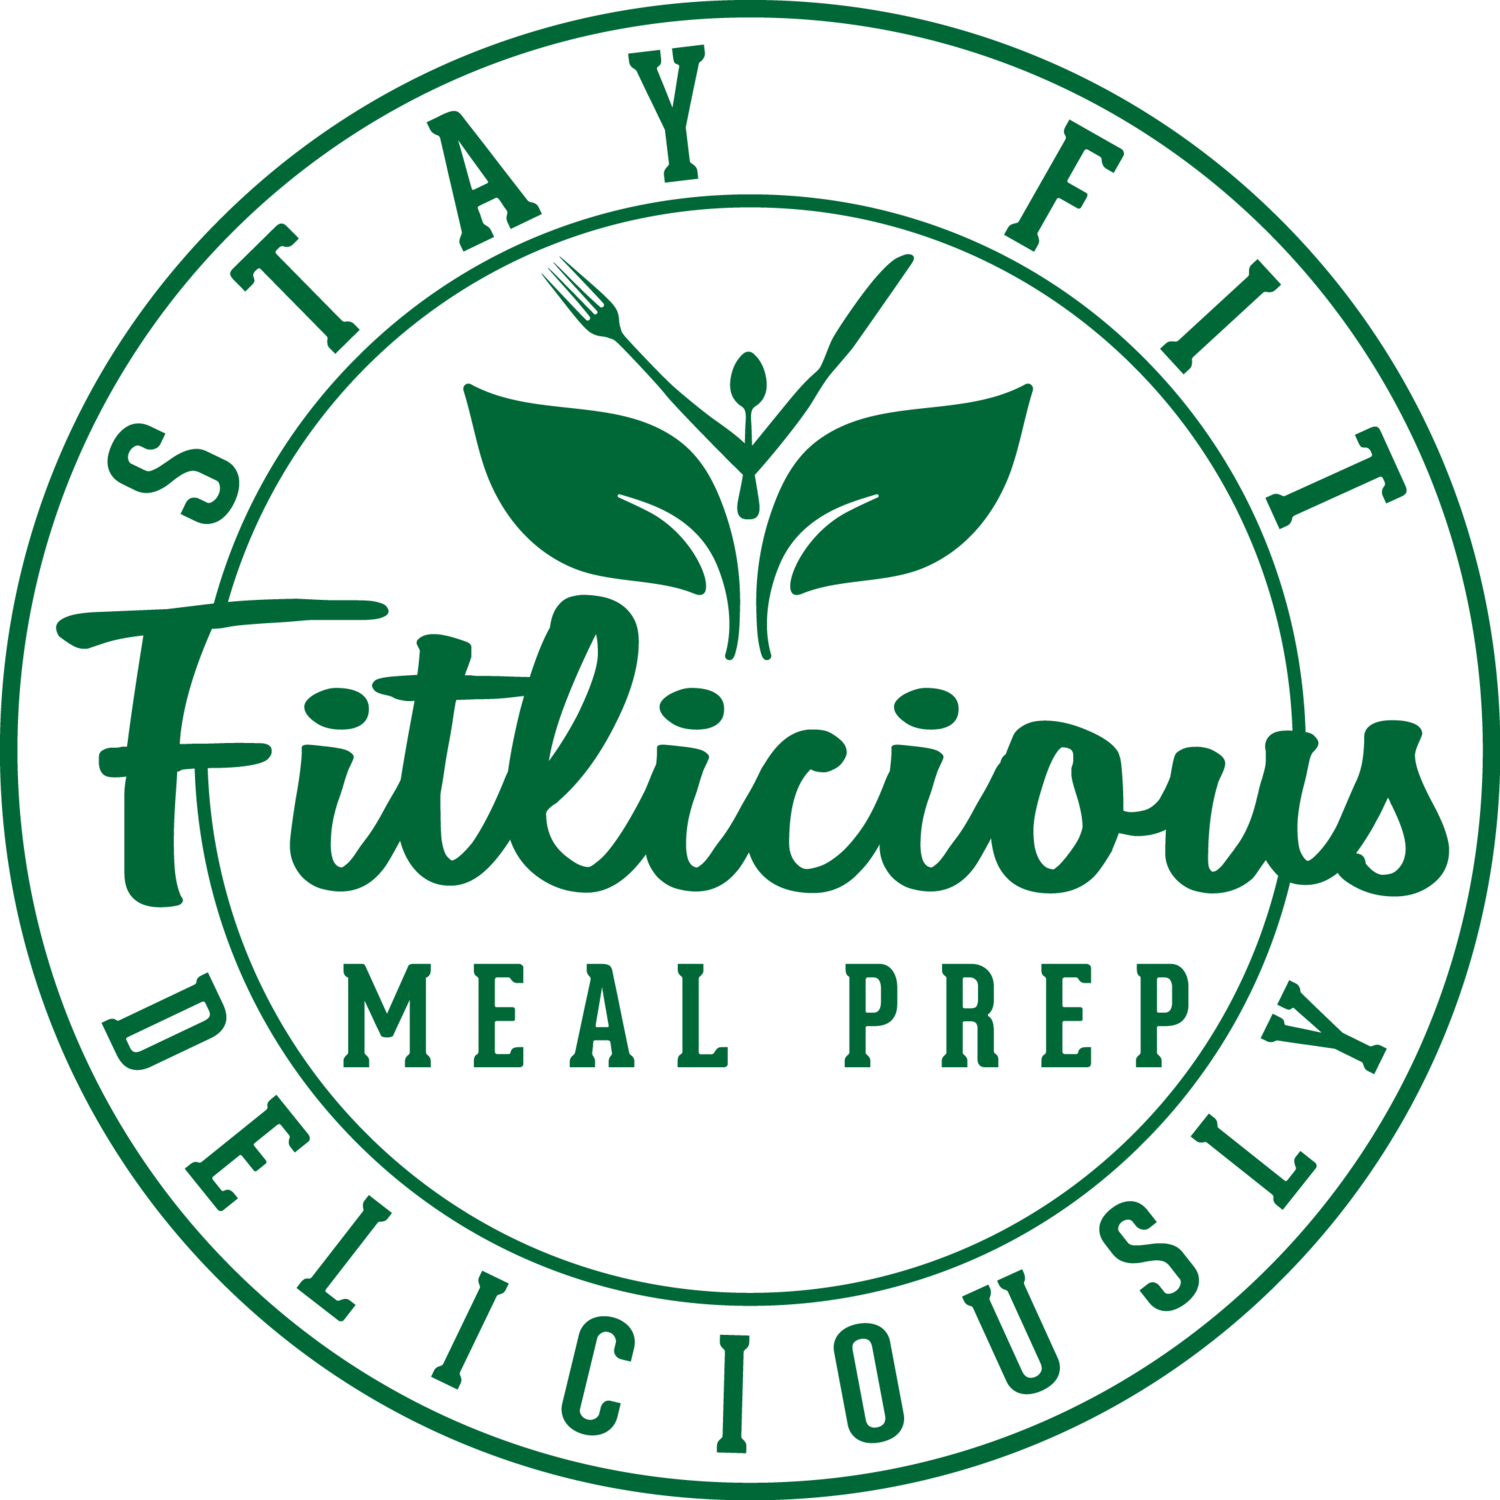 Fitlicious Meal Prep - San Fernando Valley & Los Angeles Meal Prep and Delivery